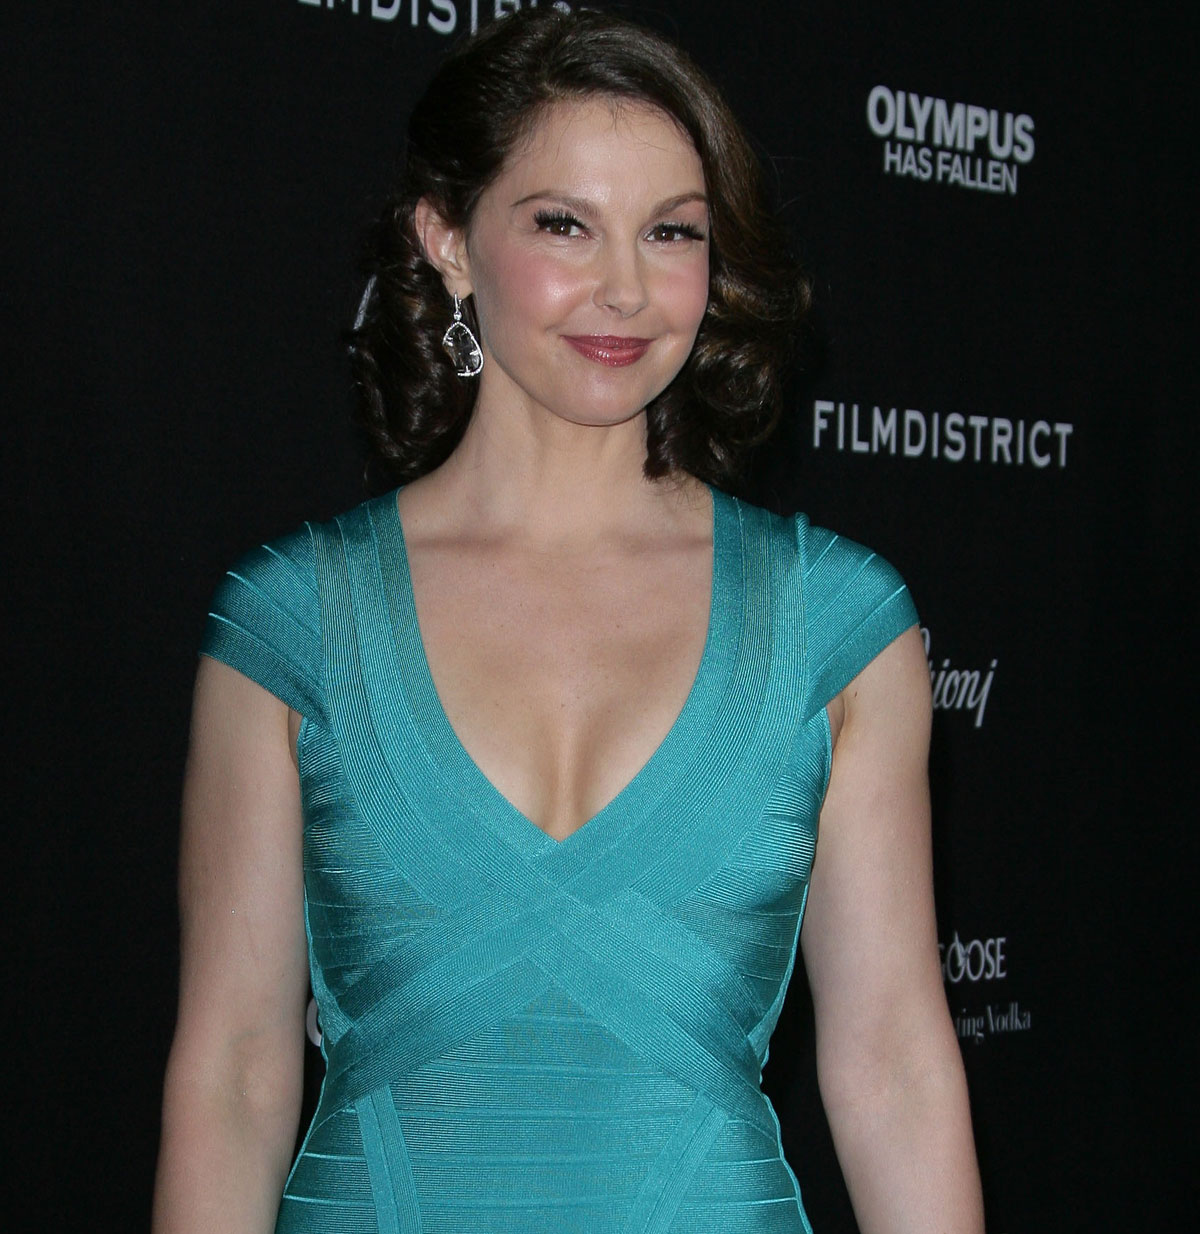 Ashley Judd Hospitalized With 'Massive Catastrophic Injuries' After Accident In Africa